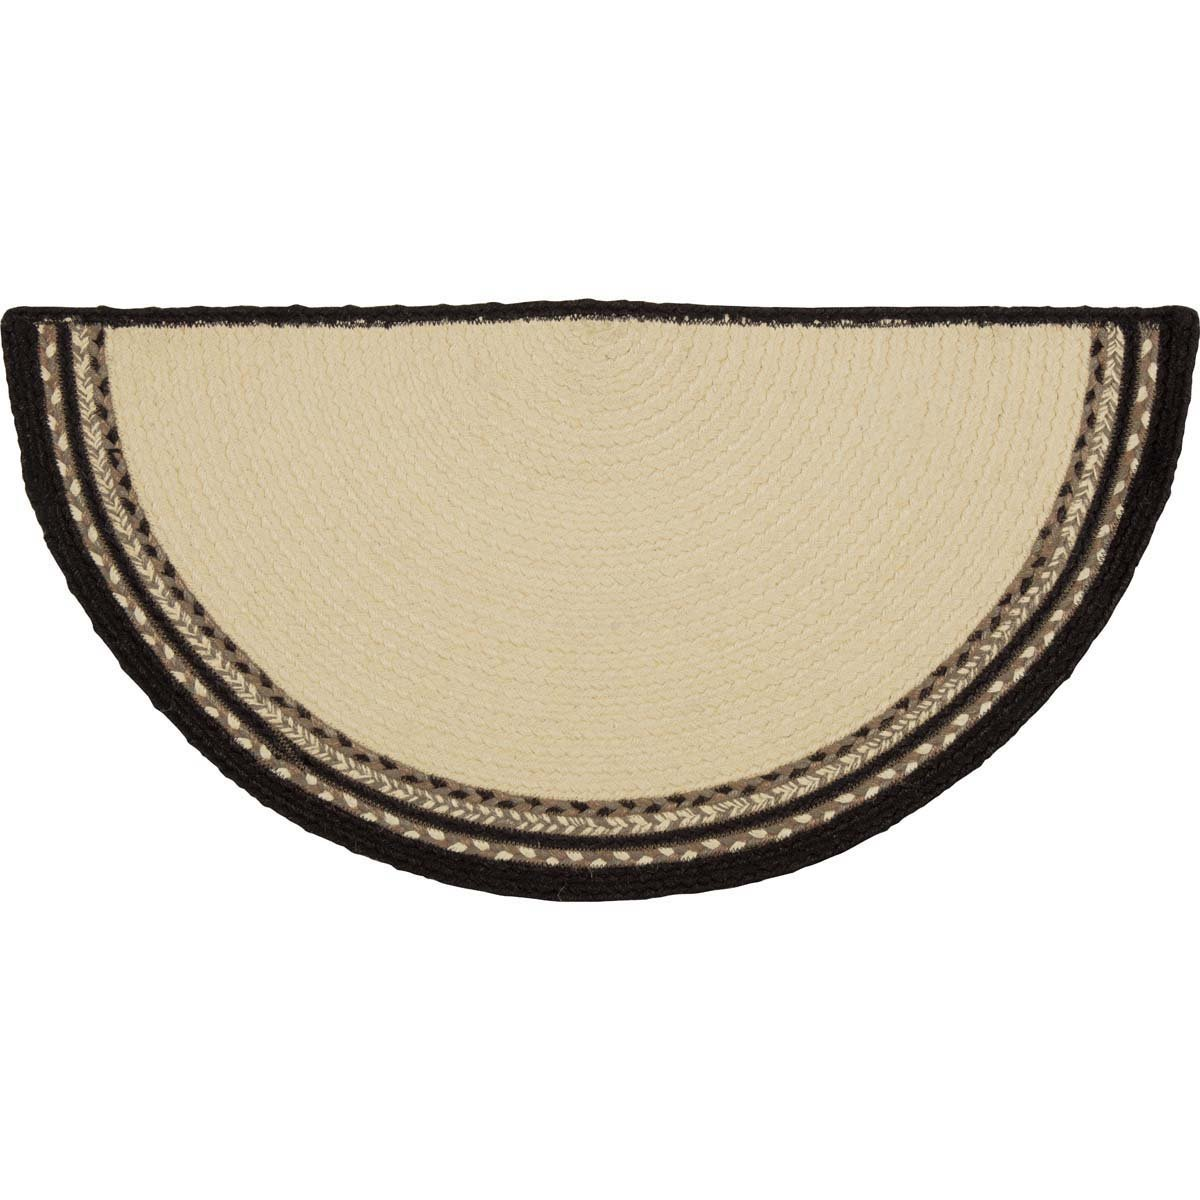 Sawyer Mill Charcoal Pig Jute Rug Half Circle.